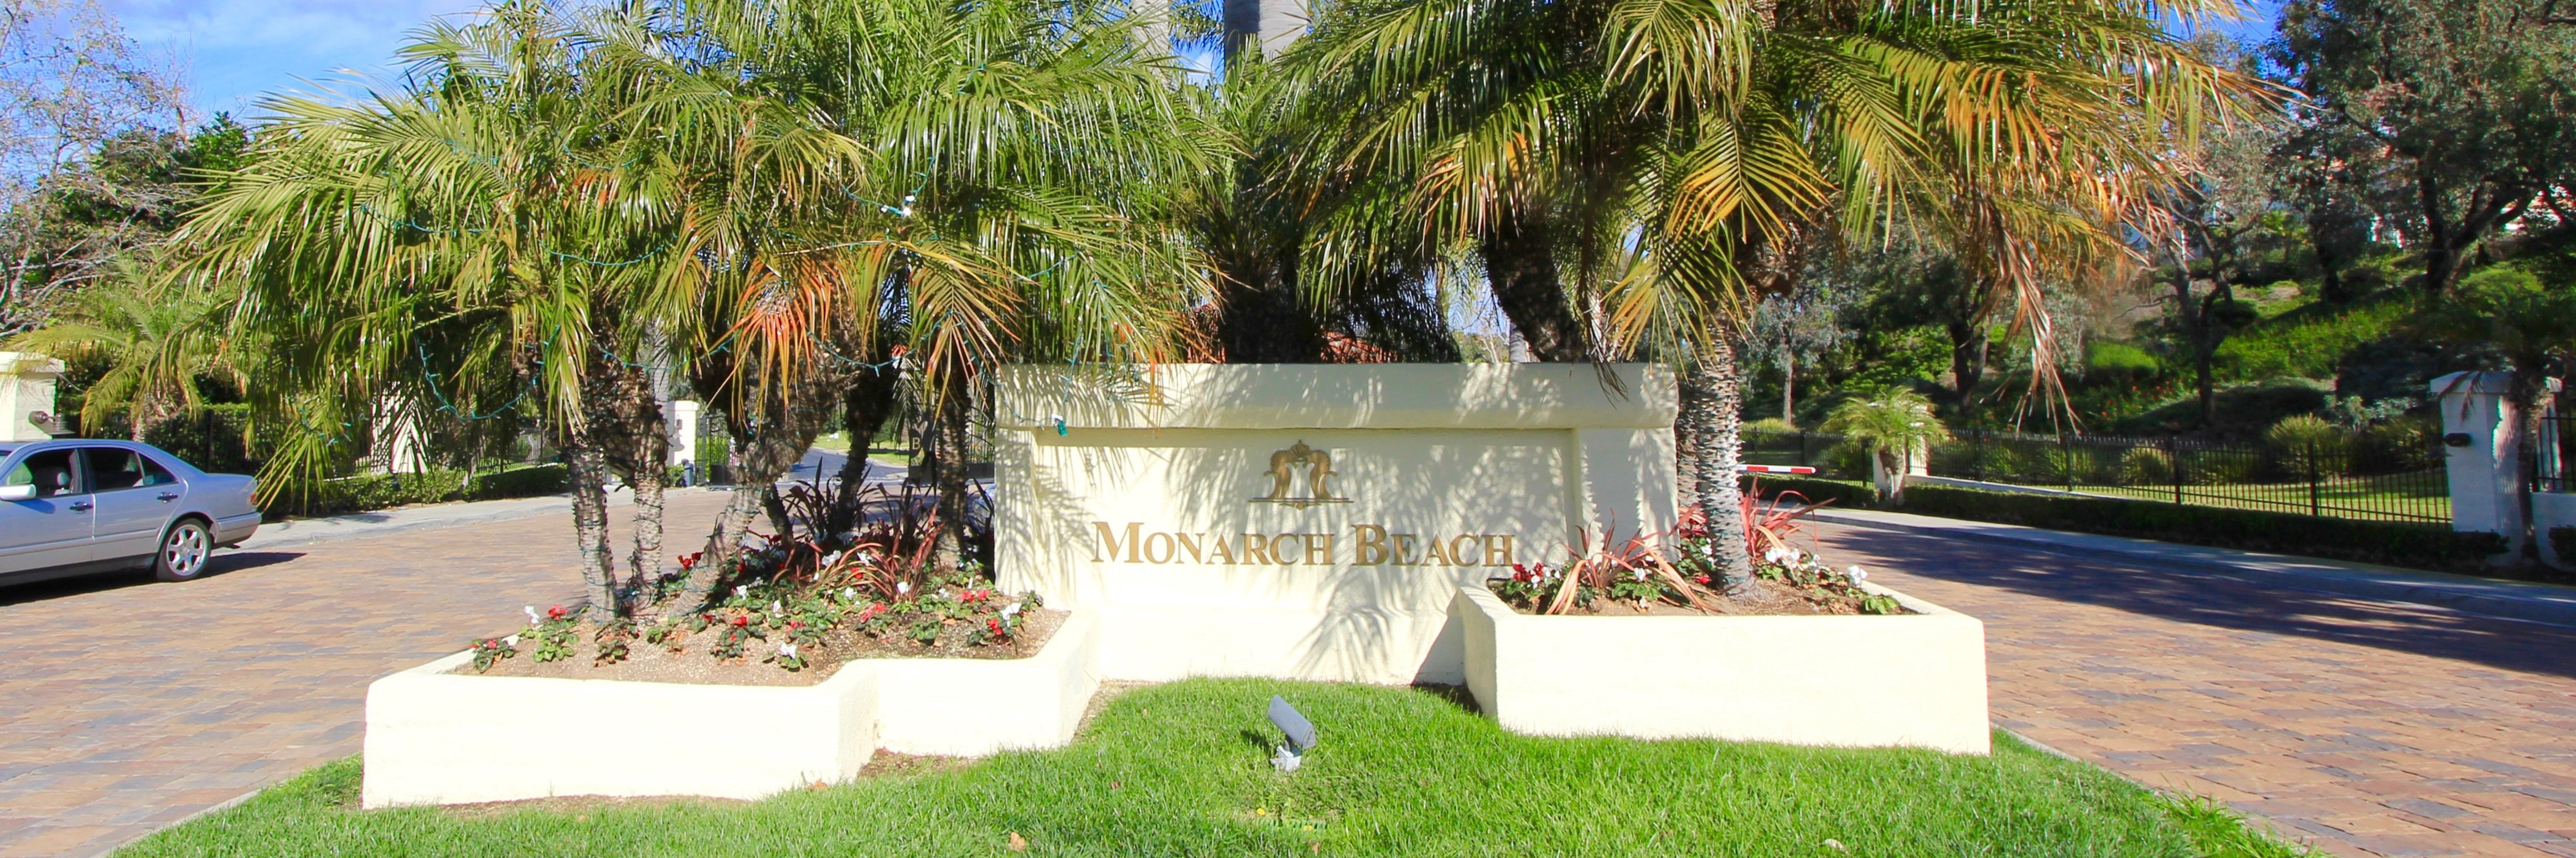 Monarch Beach Community Marquee in Dana Point Ca